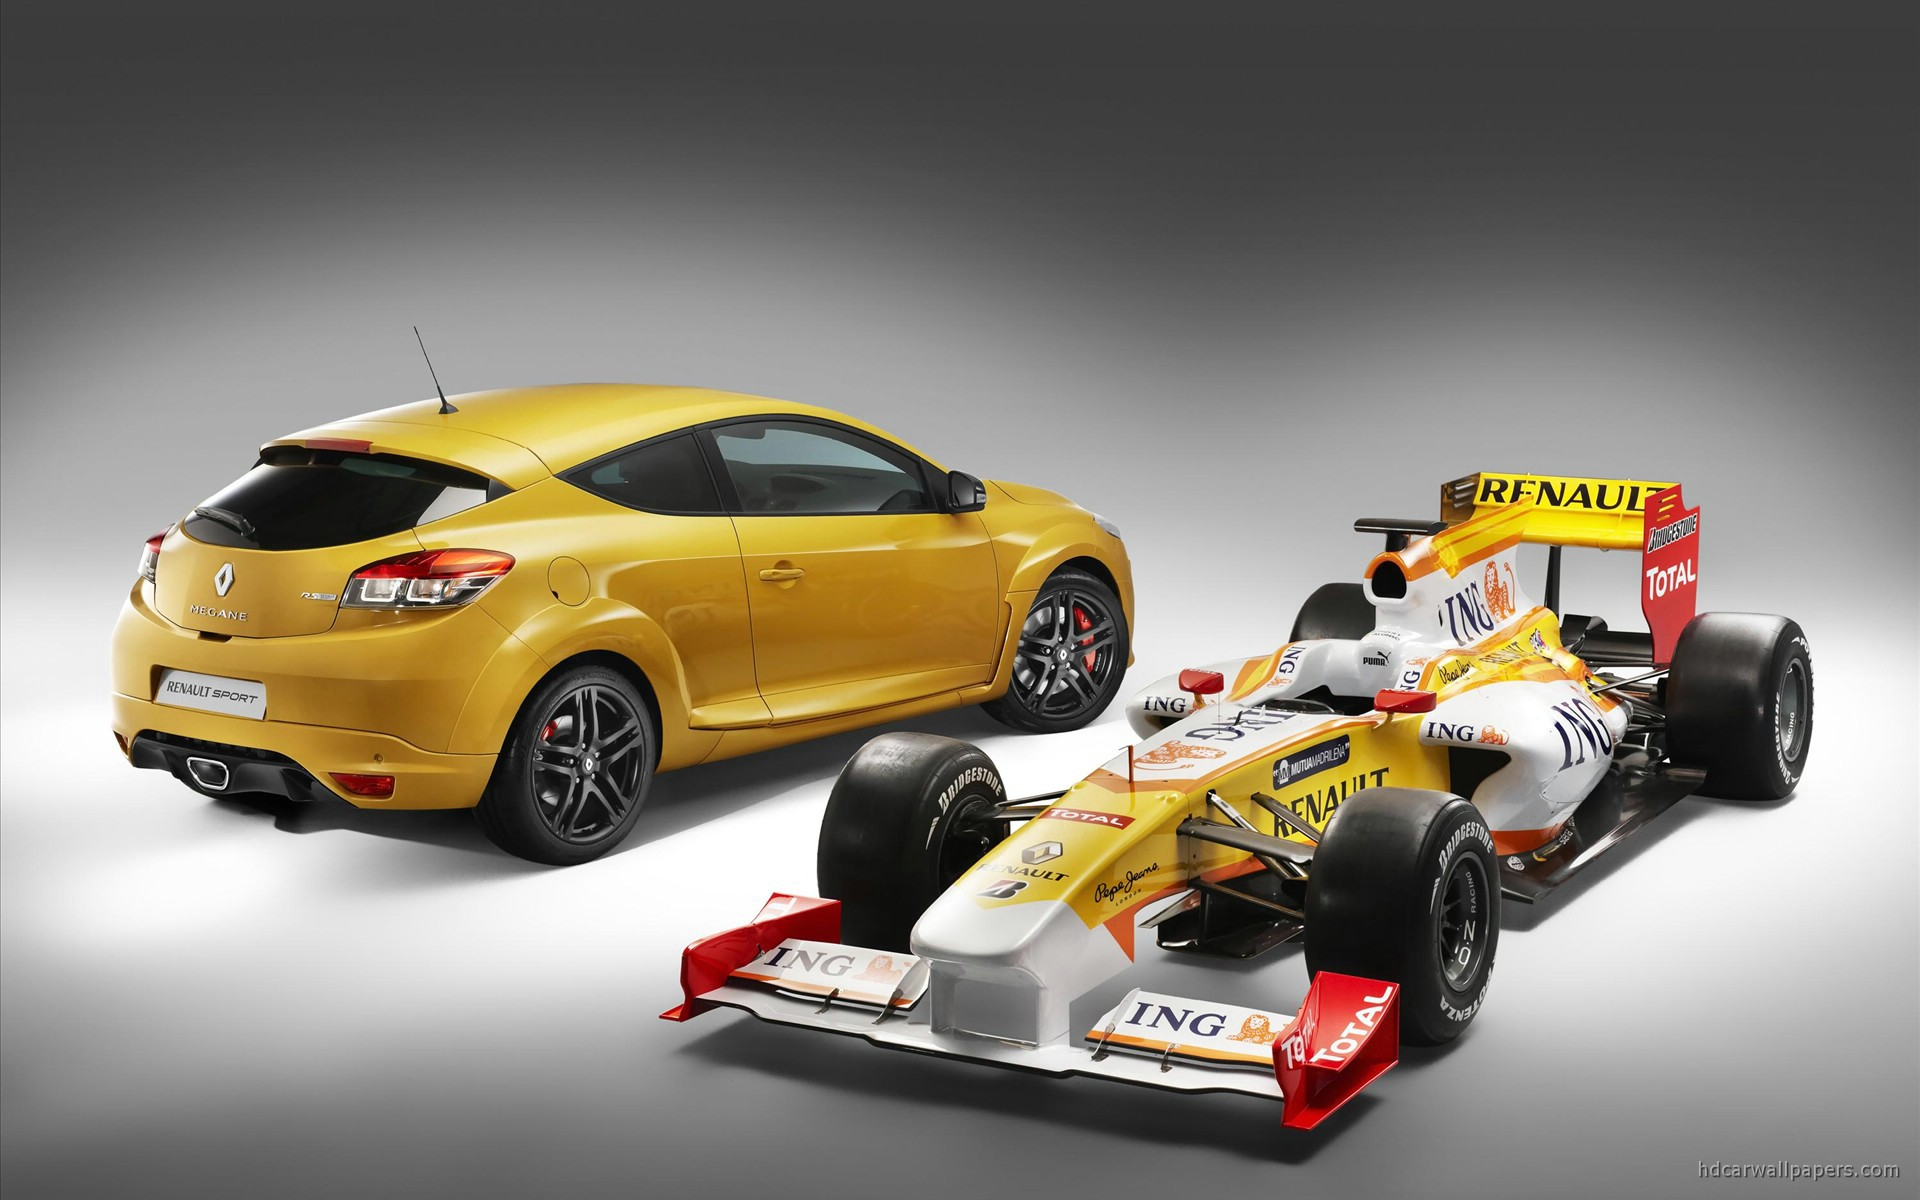 2010 New Megane Renault Sport 3 Wallpaper